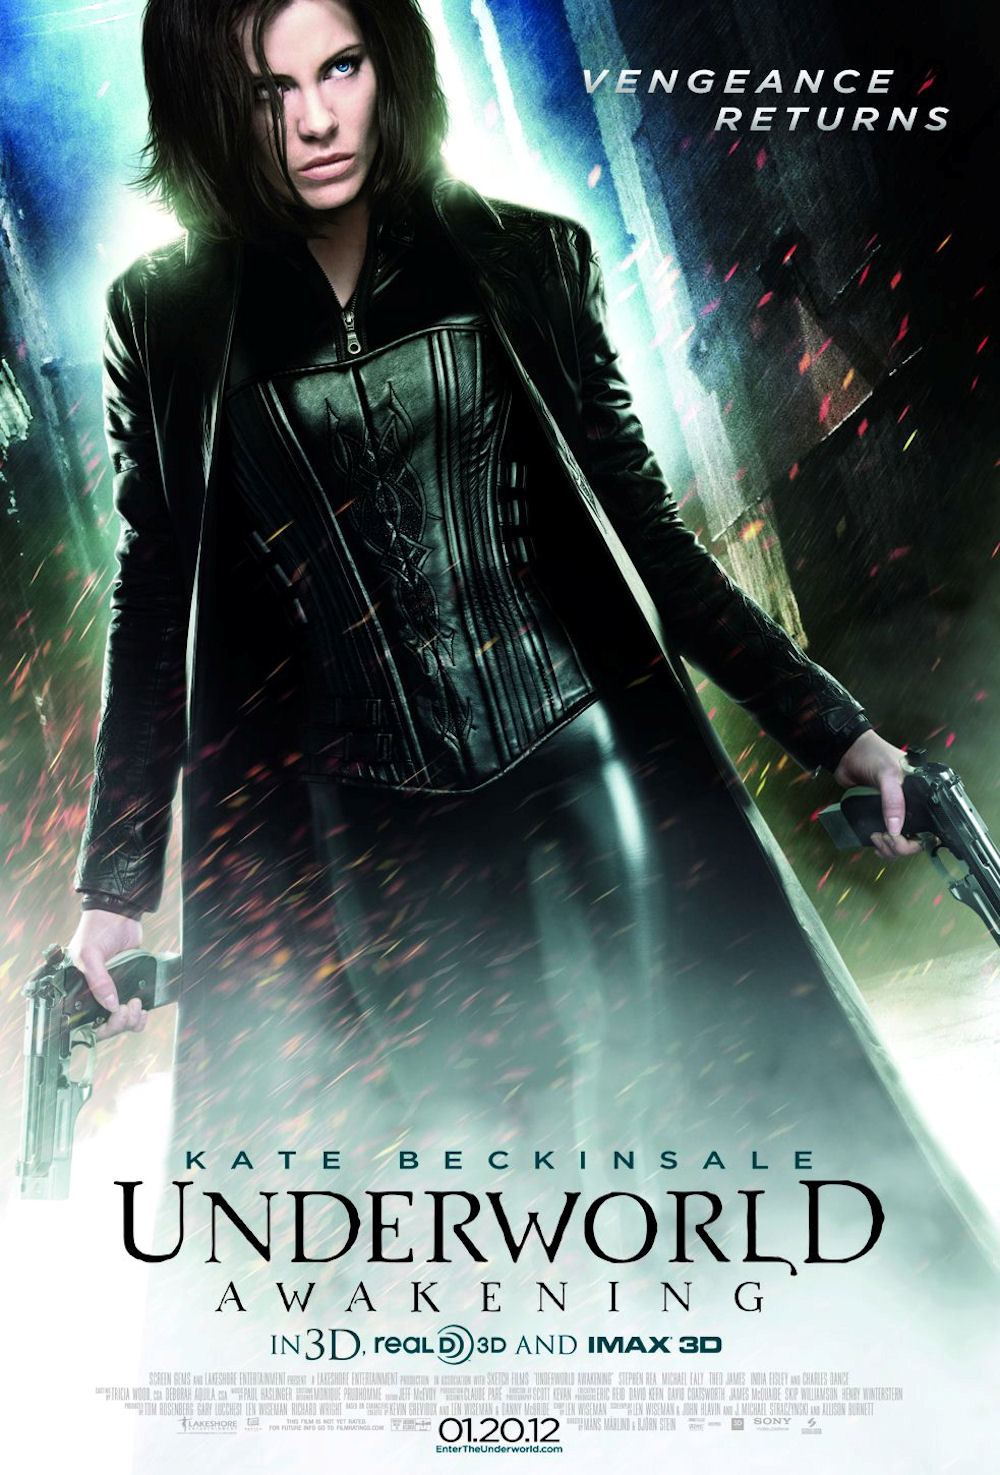 Underworld-Awakening-Official-Poster.jpg